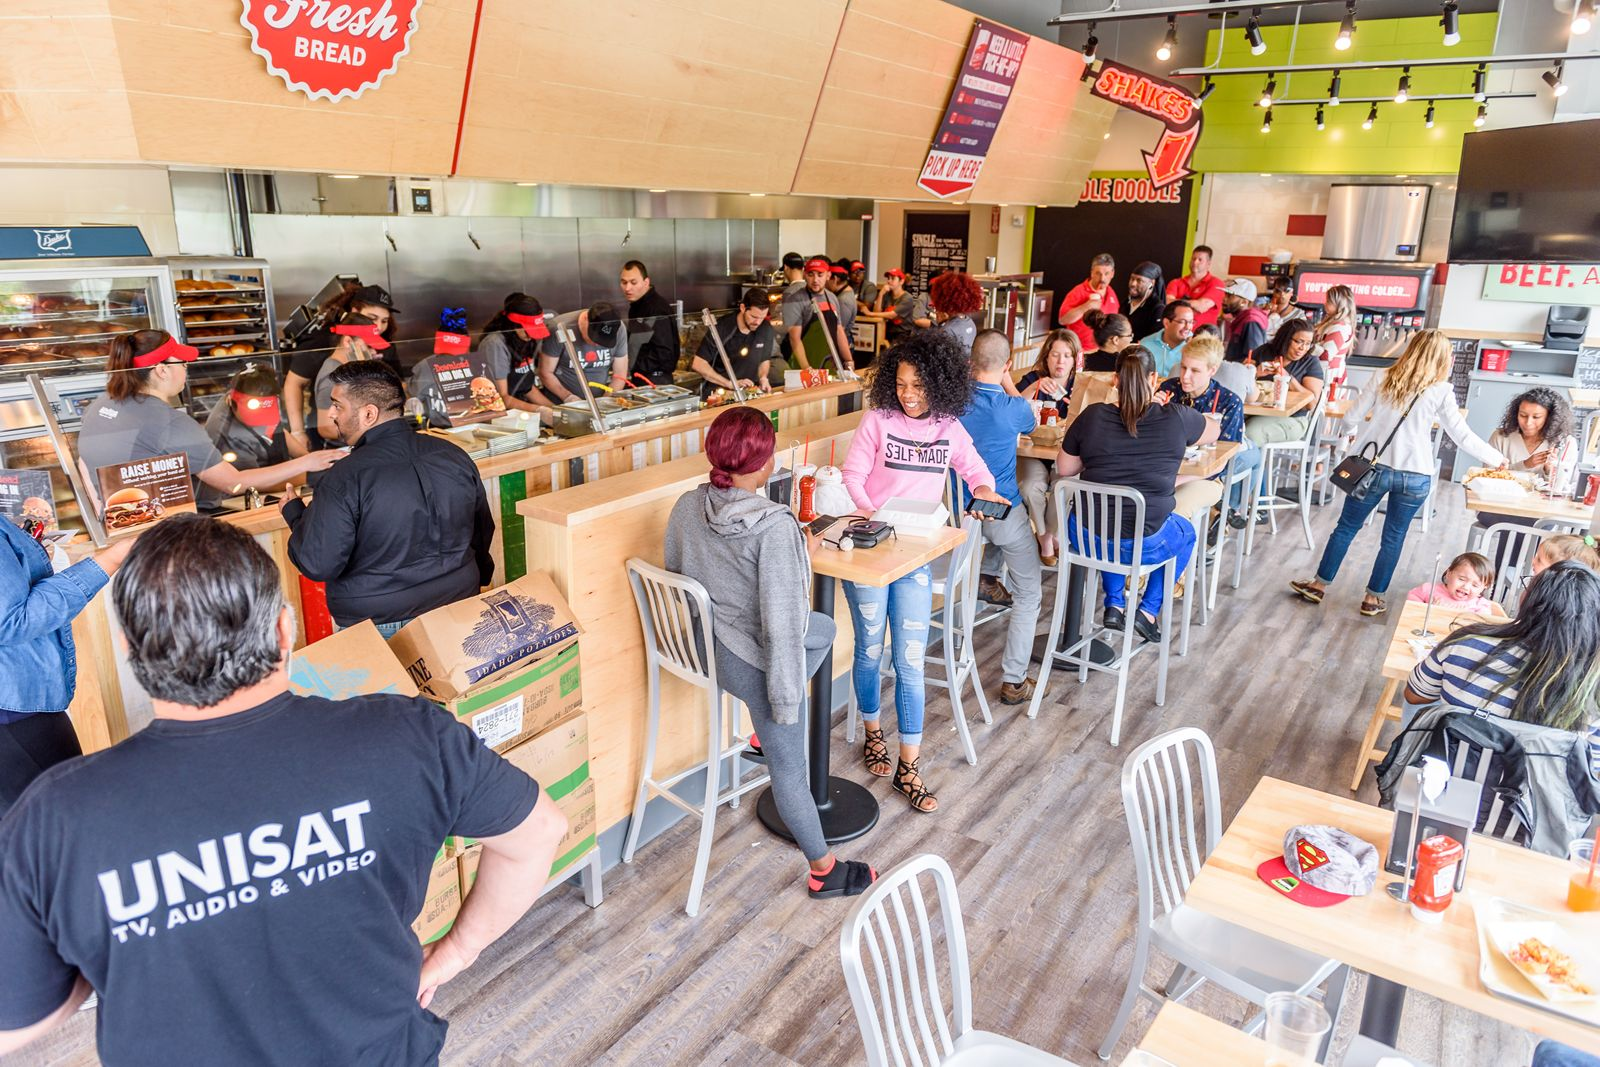 MOOYAH to Open in Middleburg Heights with Plans to Add Four Locations to the Cleveland Area